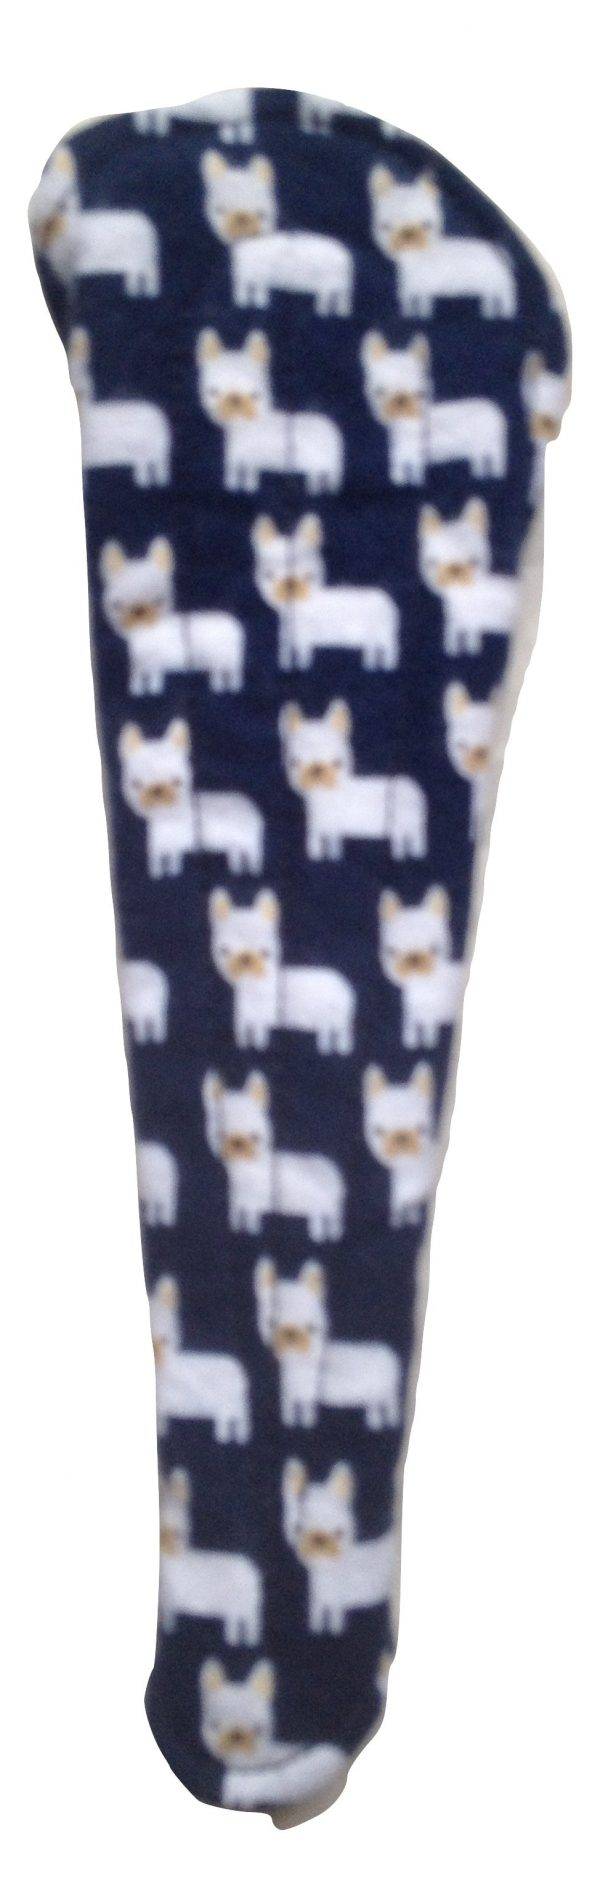 Angelpadz Pugs Cotton Flannel Thong Liner